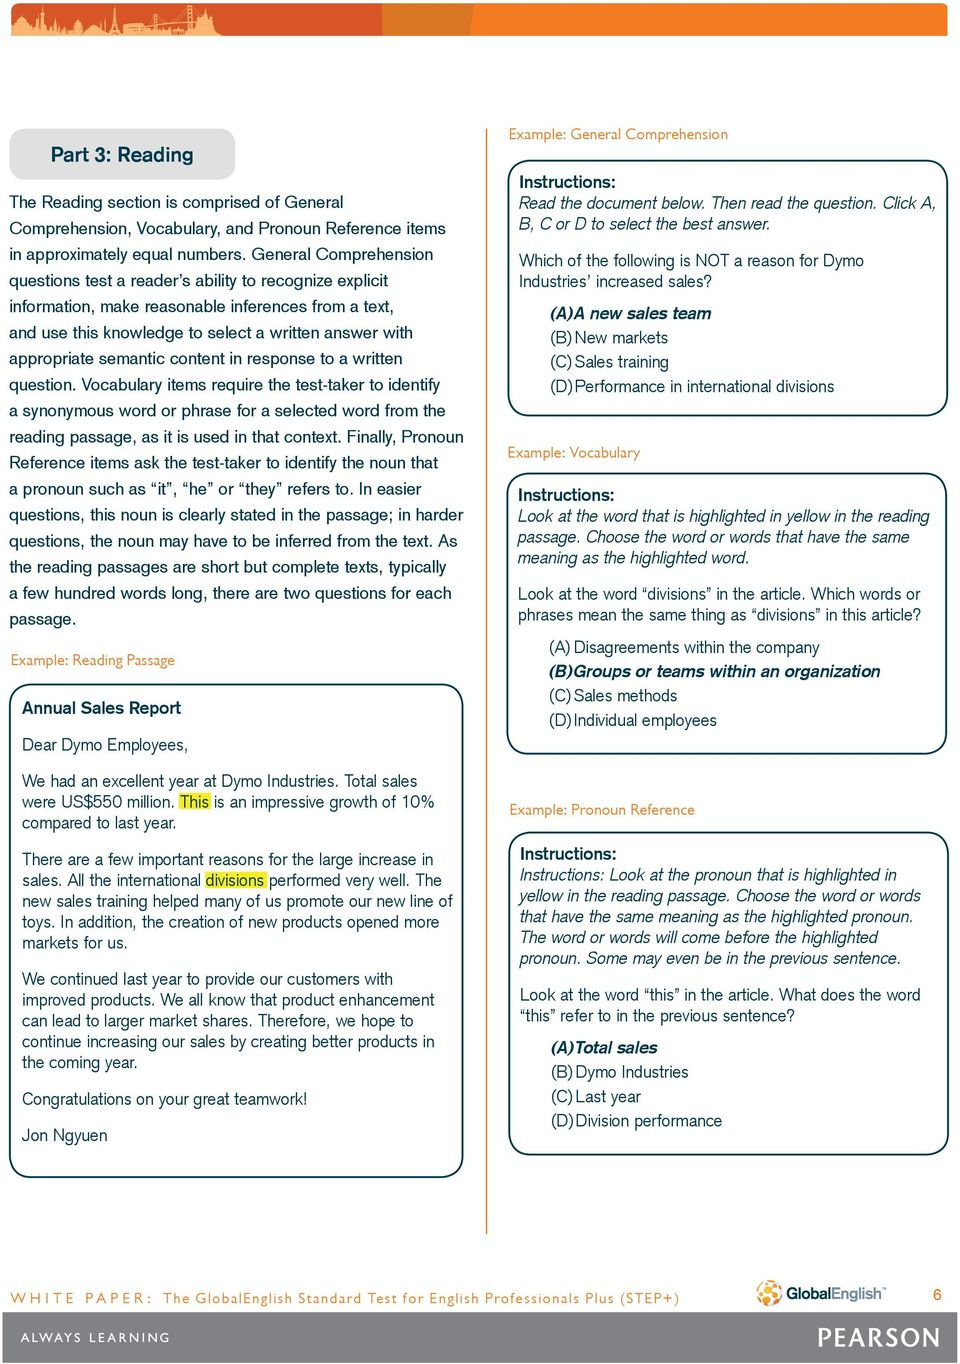 The GlobalEnglish Standard Test for English Professionals